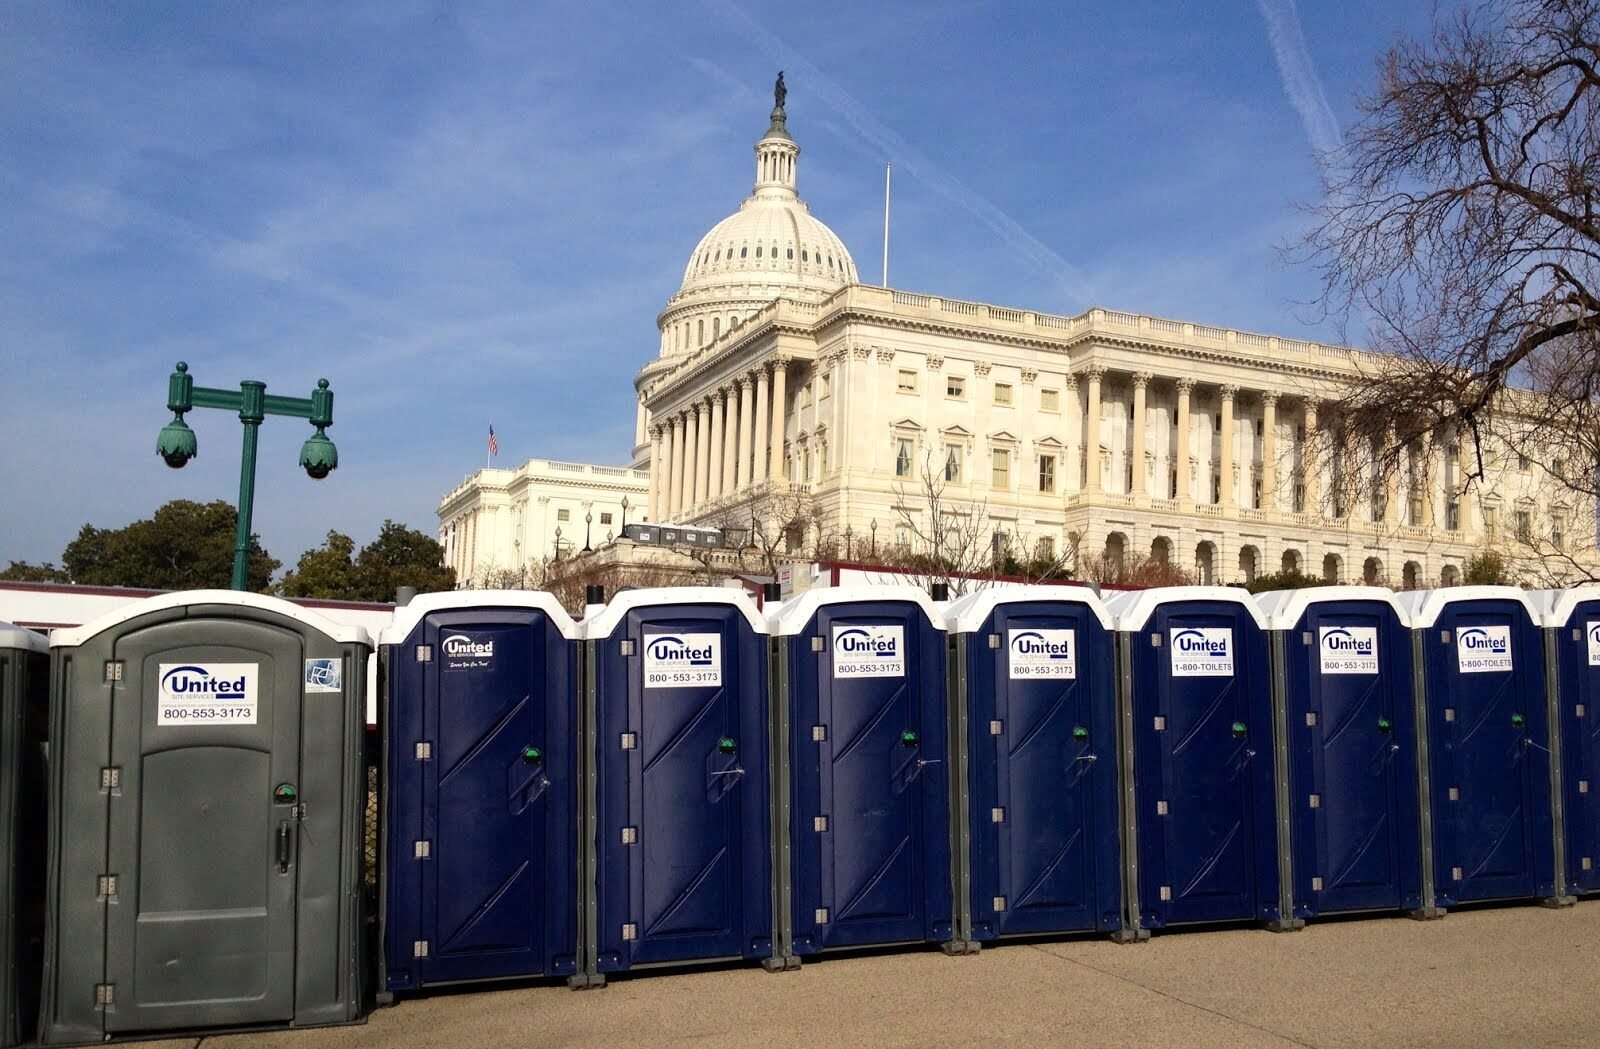 People porta potties travel to dc for inauguration news for Porta john rental